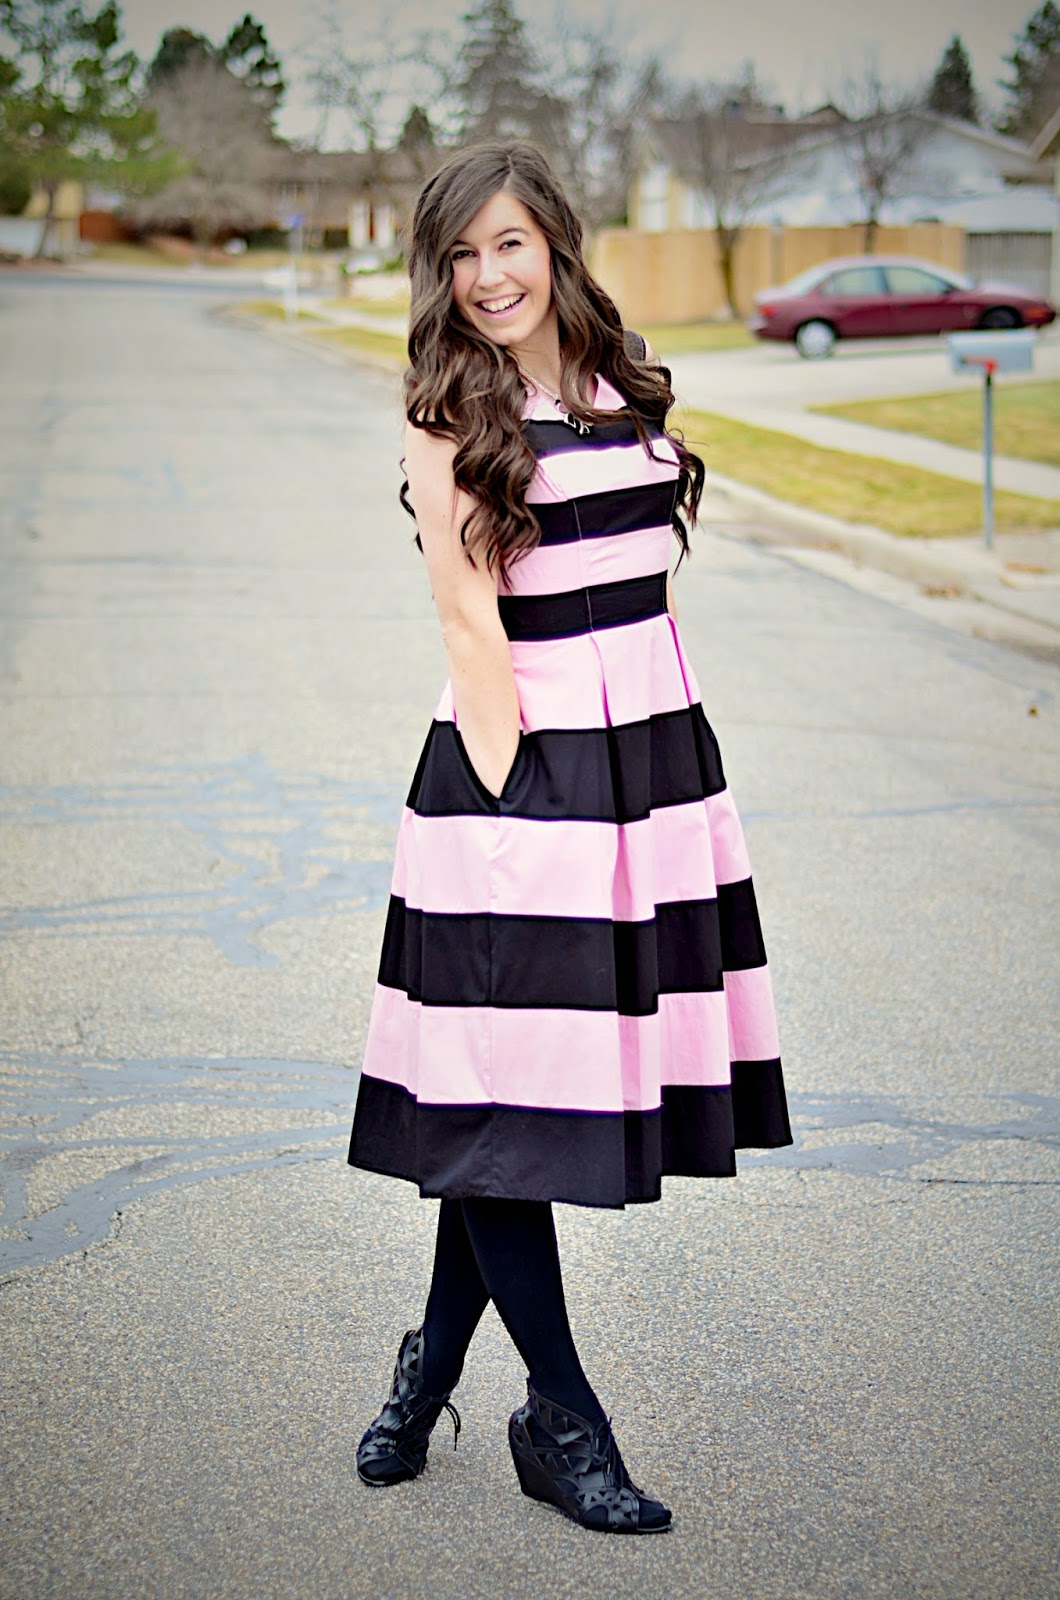 eshakti, eshakti dress, edward eliason photography, pink and white, pink and black striped dress, pink dress, pink dress outfit, valentines day, valentines day inspired outfit,